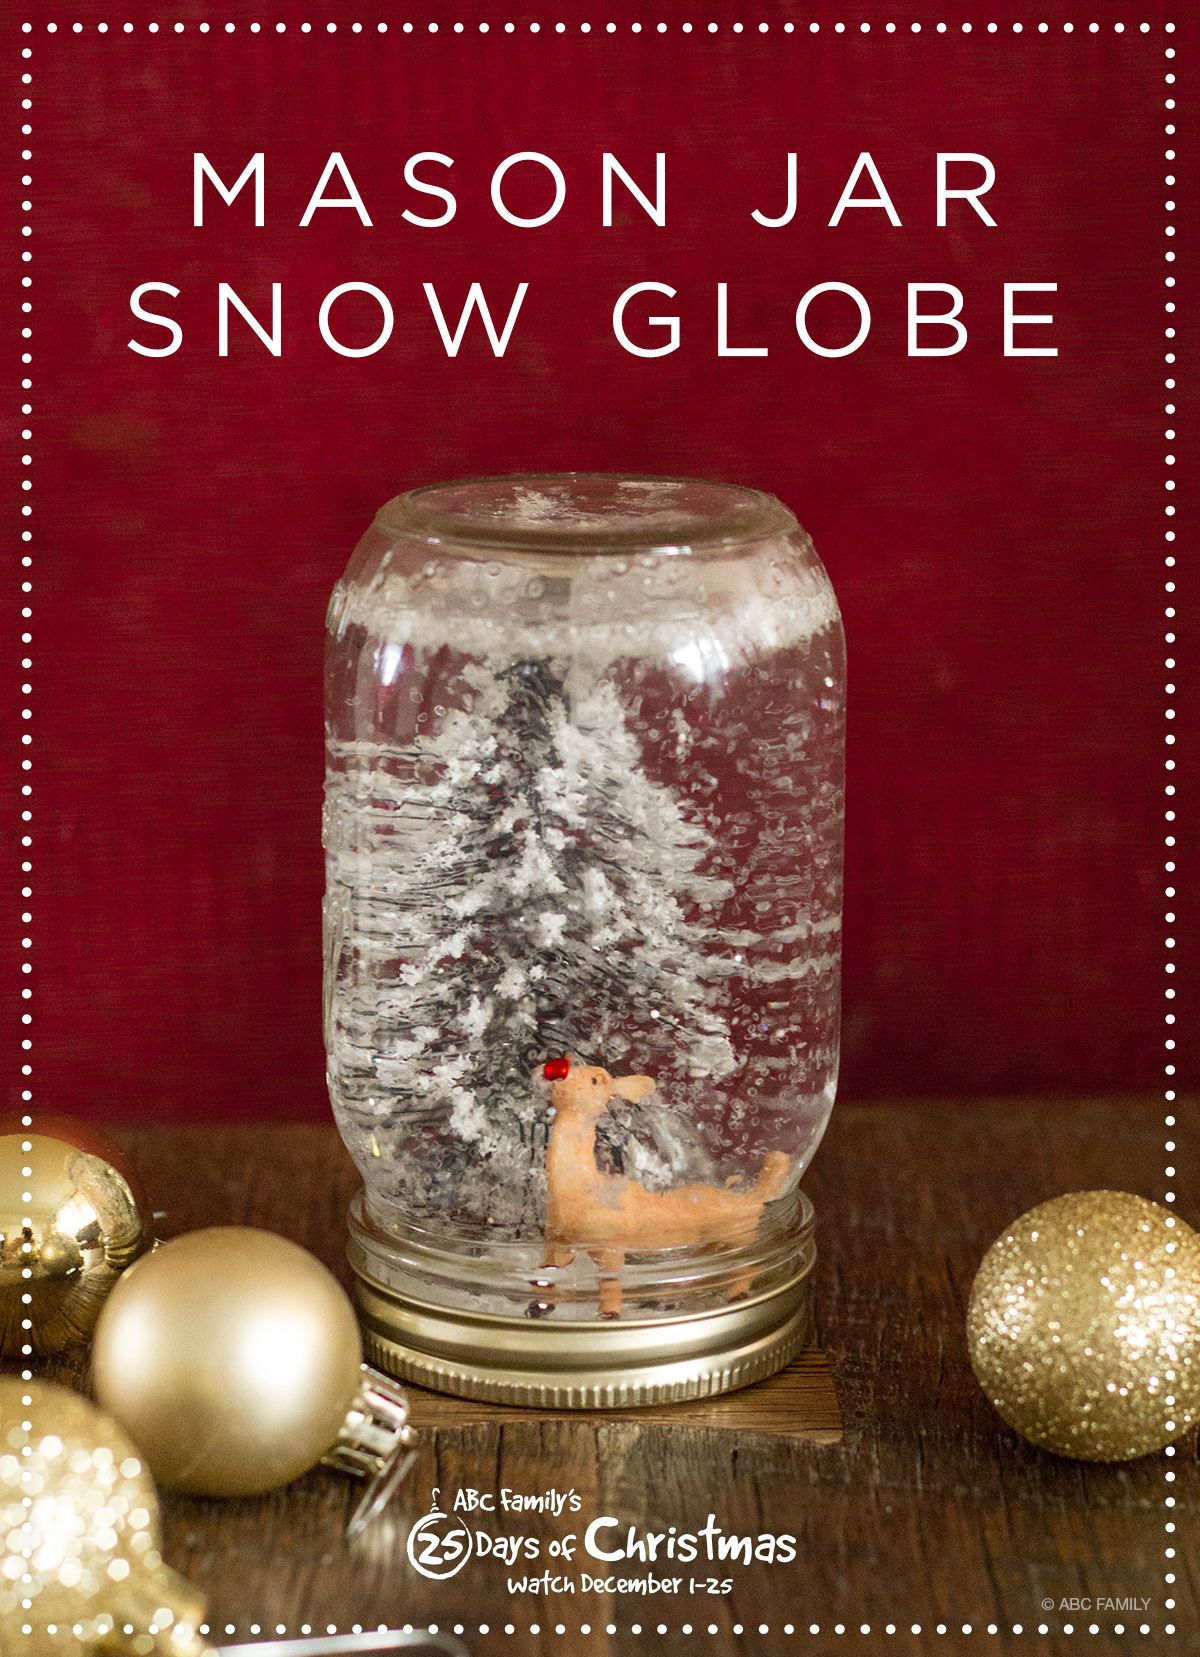 We love this festive DIY reindeer snow globe. It's the perfect addition for your 25 Days of Christmas viewing party! Click to see the instructions and don't miss ABC Family's 25 Days of Christmas December 1-25, 2014.